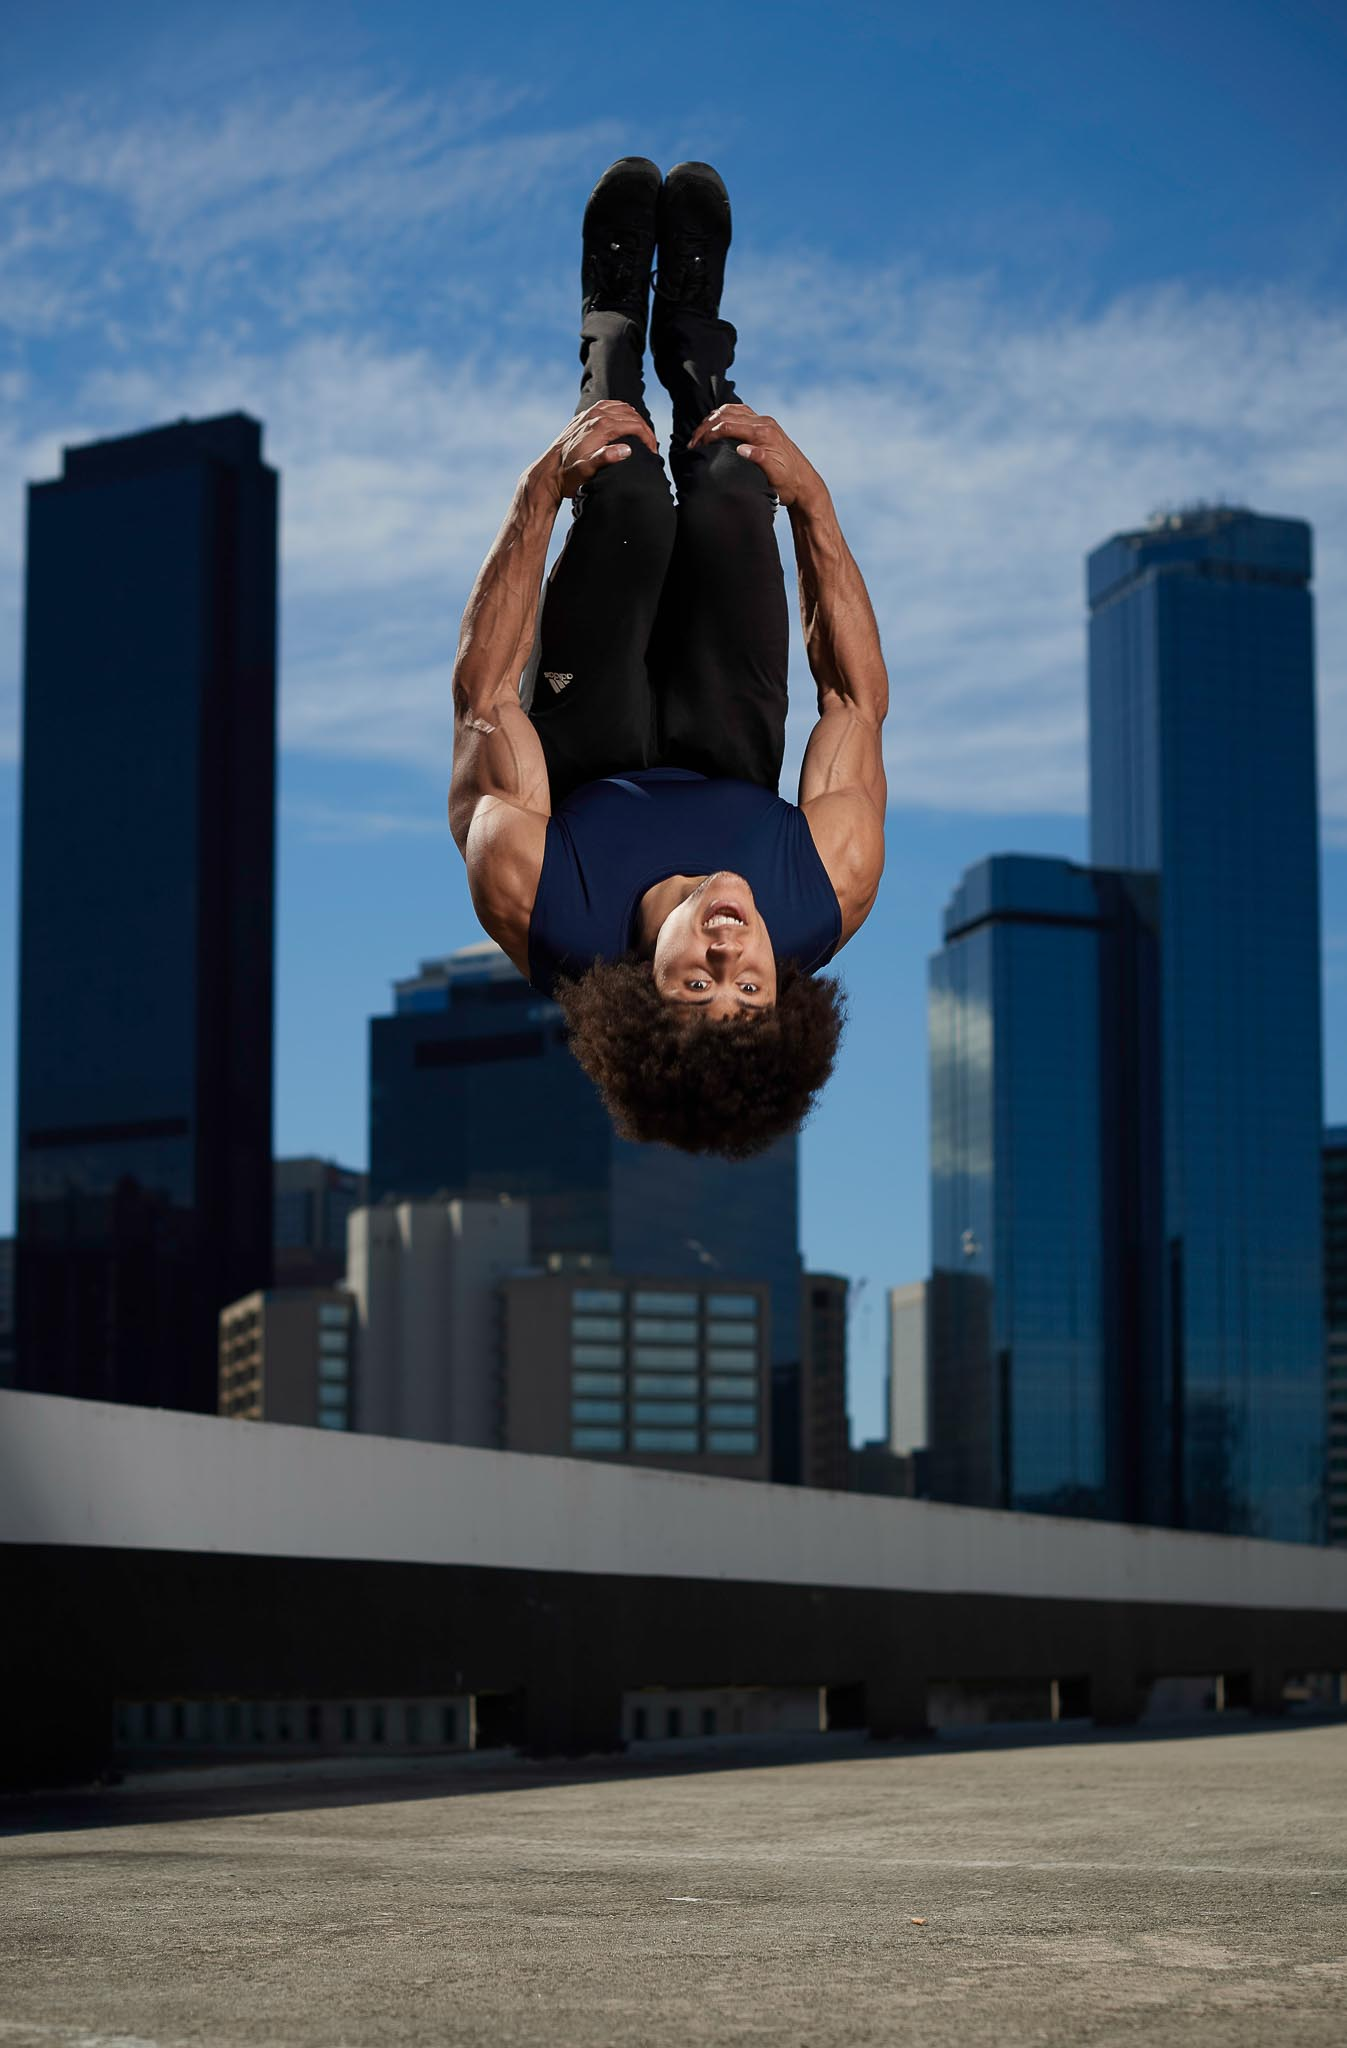 Ossie doing a backflip on downtown Melbourne car park rooftop